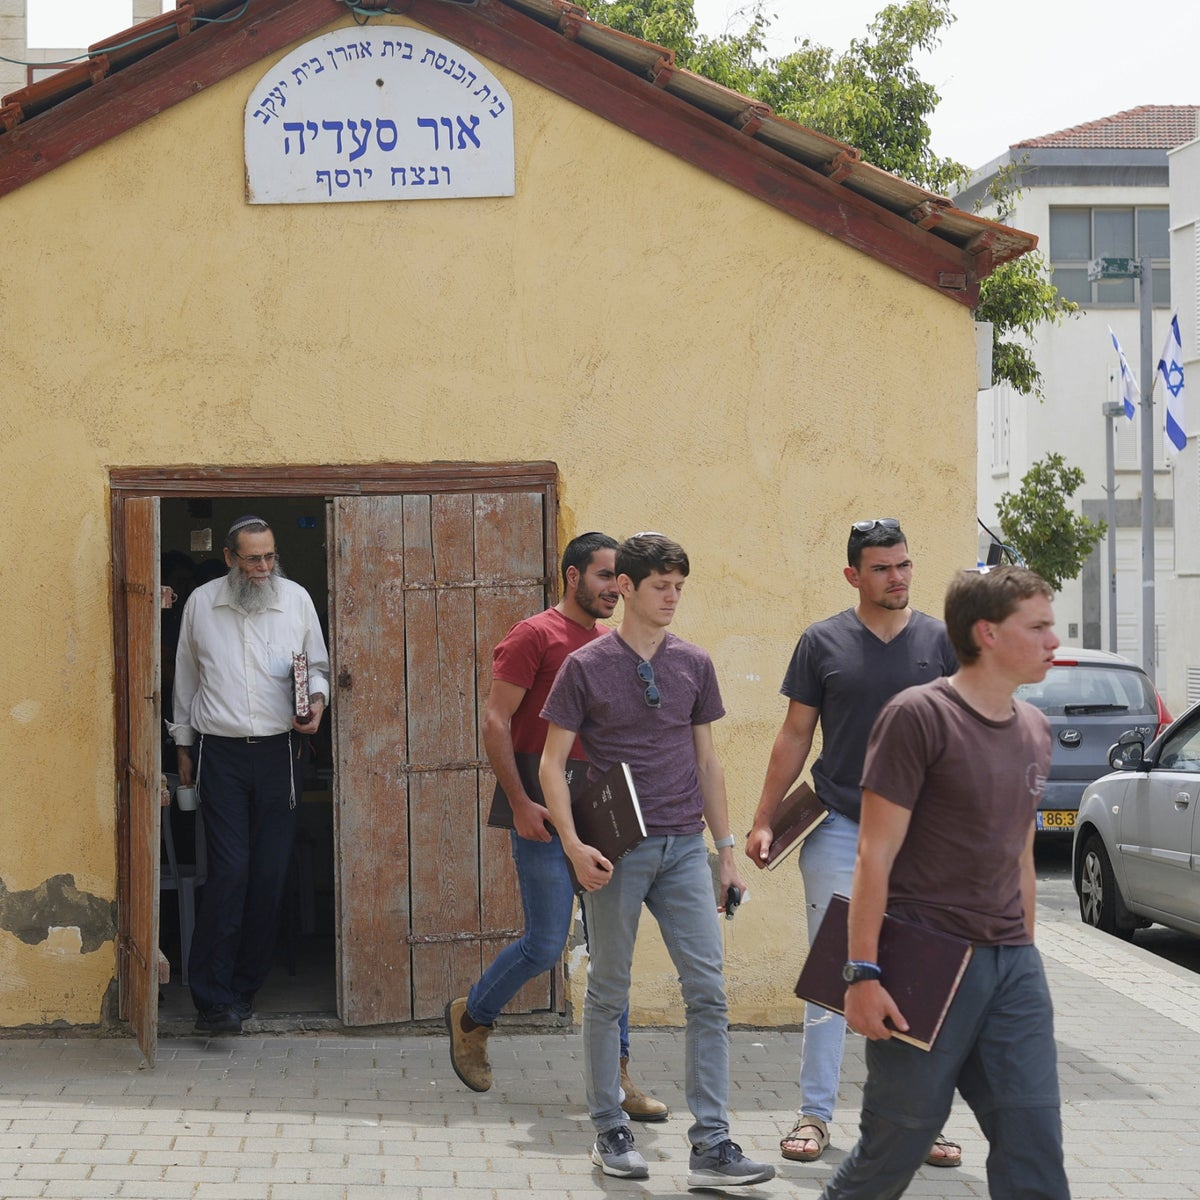 Rabbi Mali leaving his yeshiva in Jaffa, the day after the riots last month.